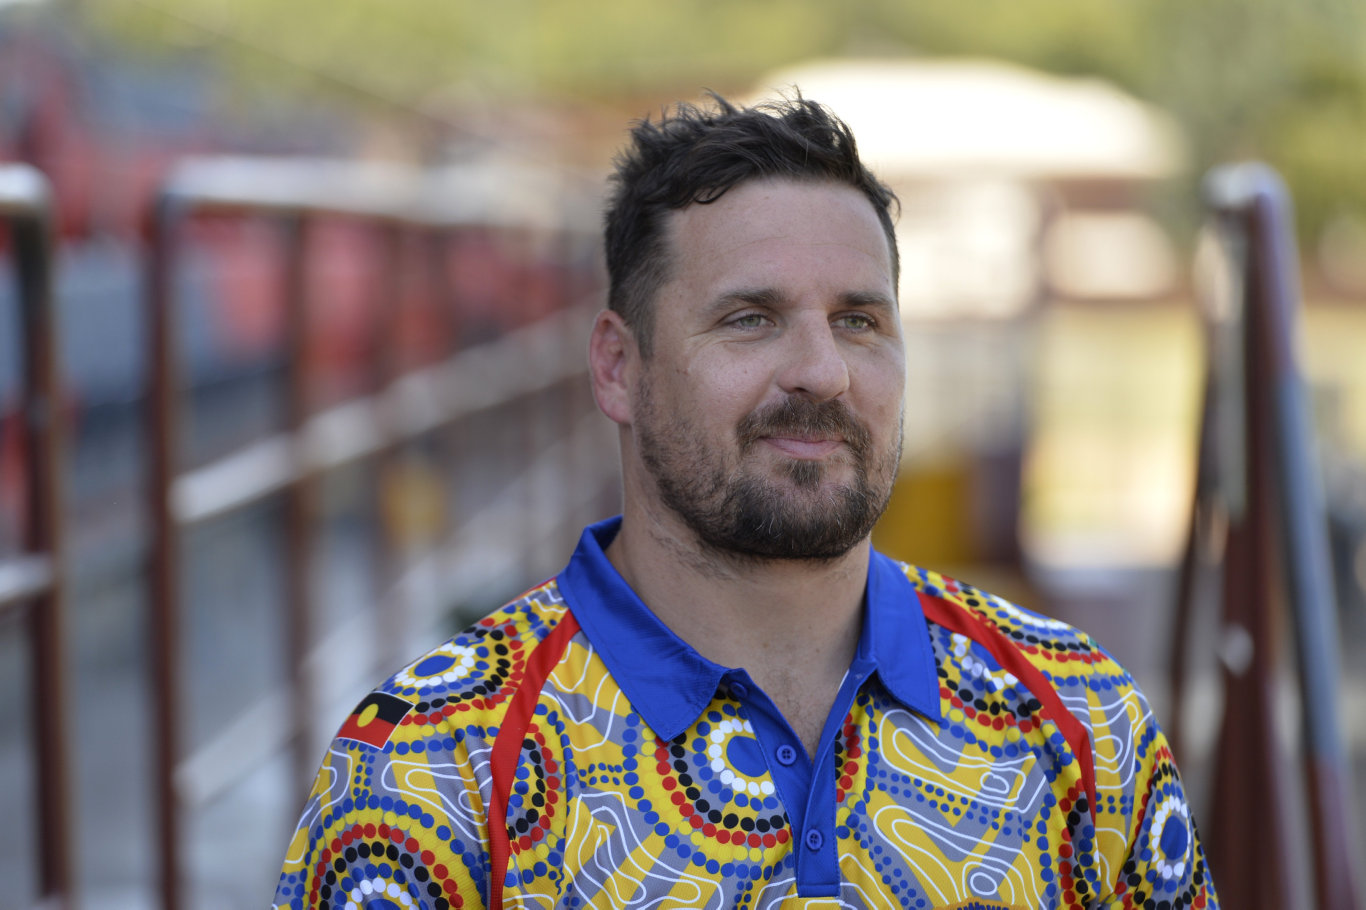 The former NRL star appeared briefly in a Toowoomba court.